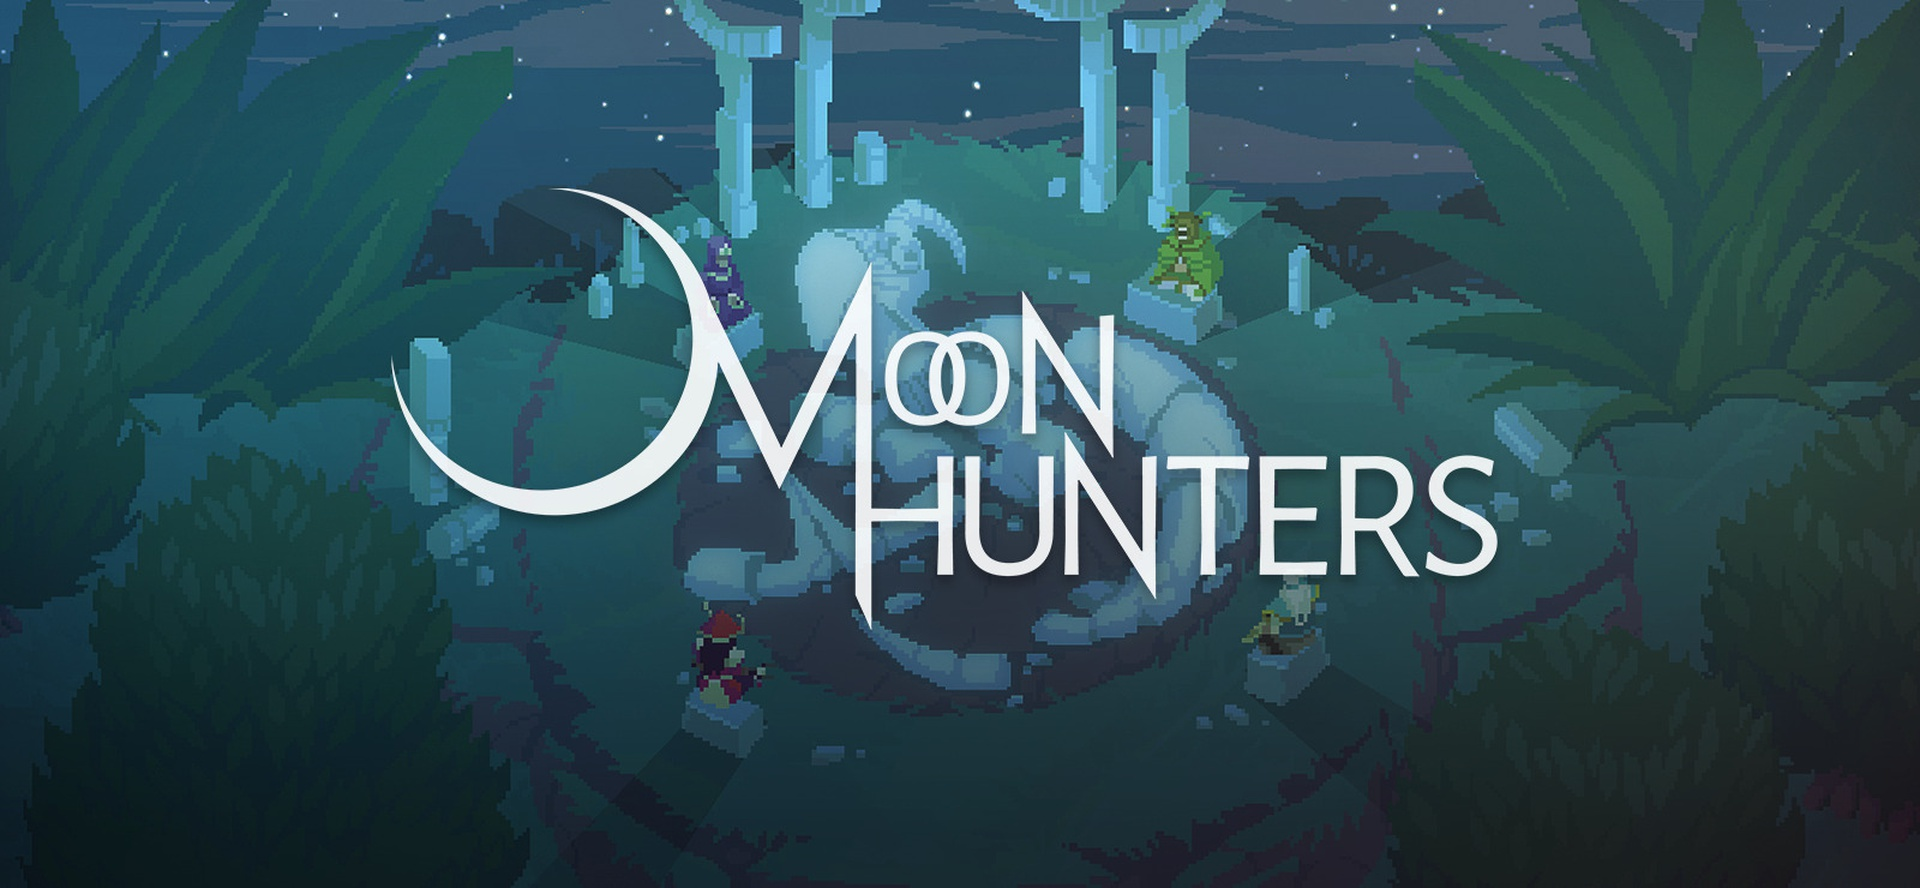 Moon Hunters Video